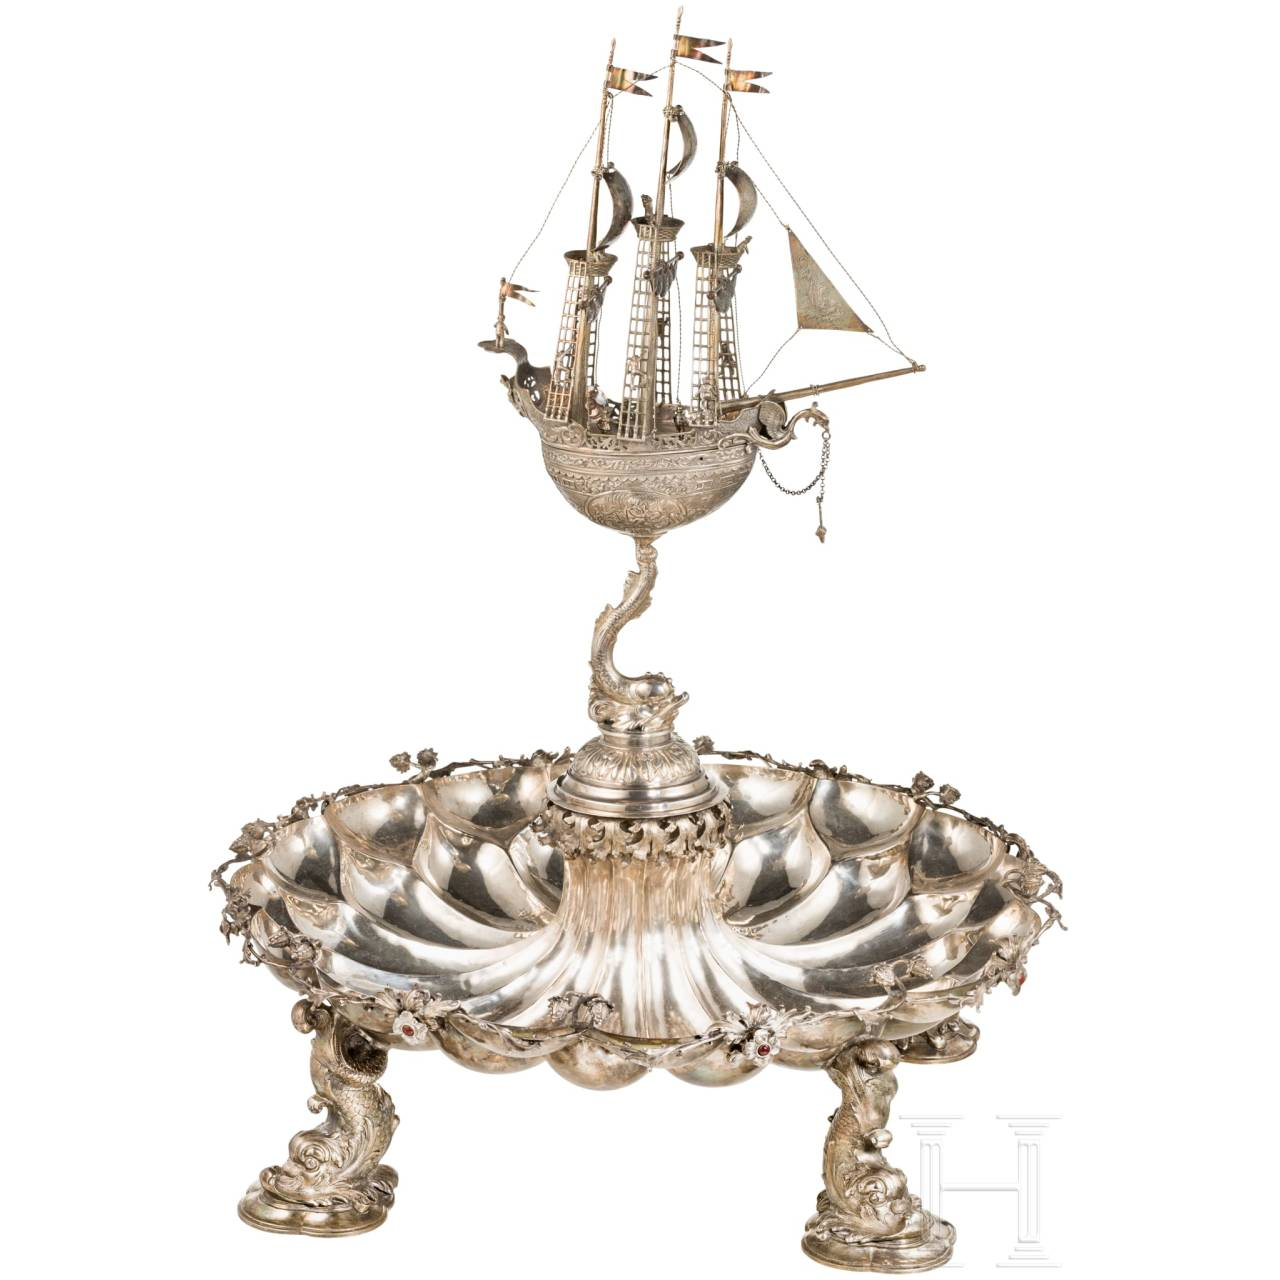 An imposing German table centrepiece with almandine cabochons, circa 1900